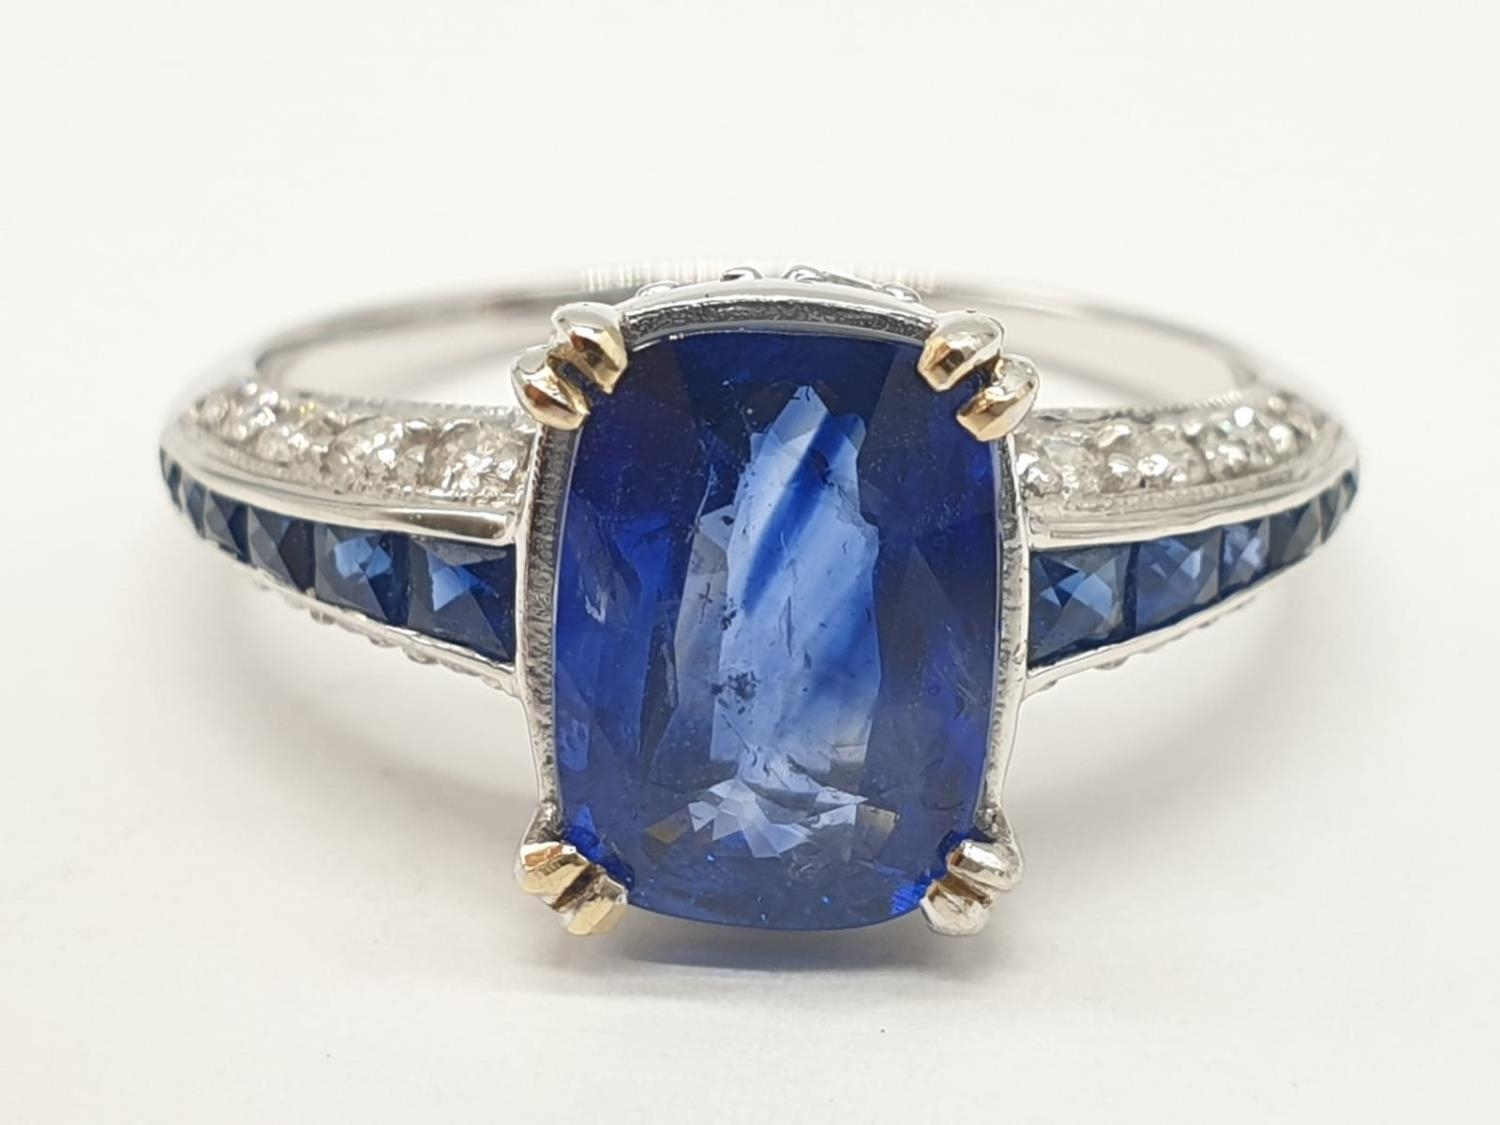 18ct White gold ring with sapphire and diamonds. Weighs 3.2g and is a size N.